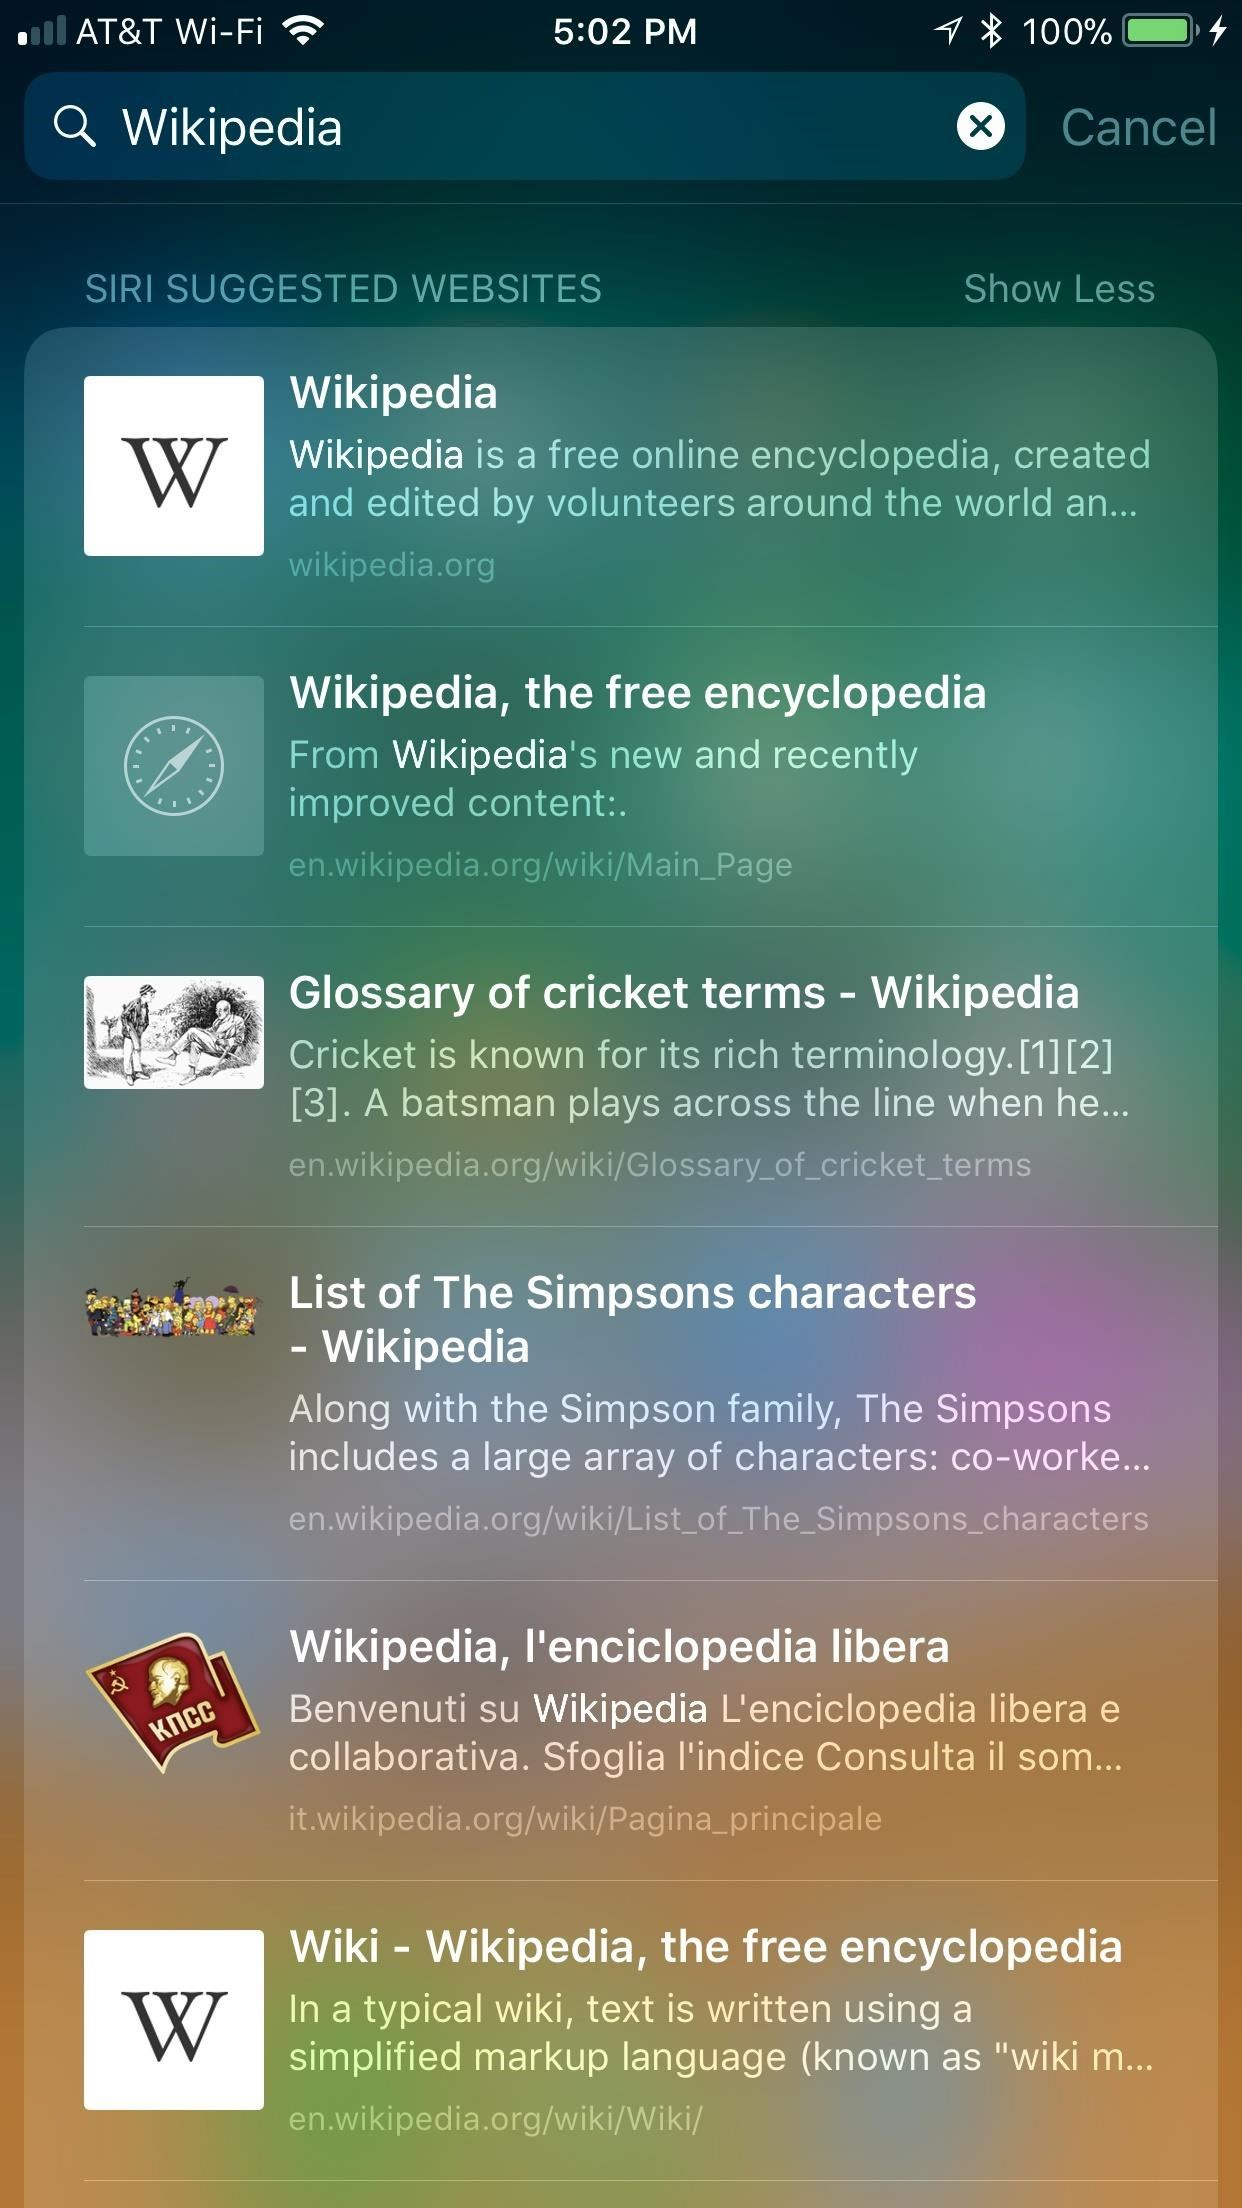 how to find safari history on iphone 5